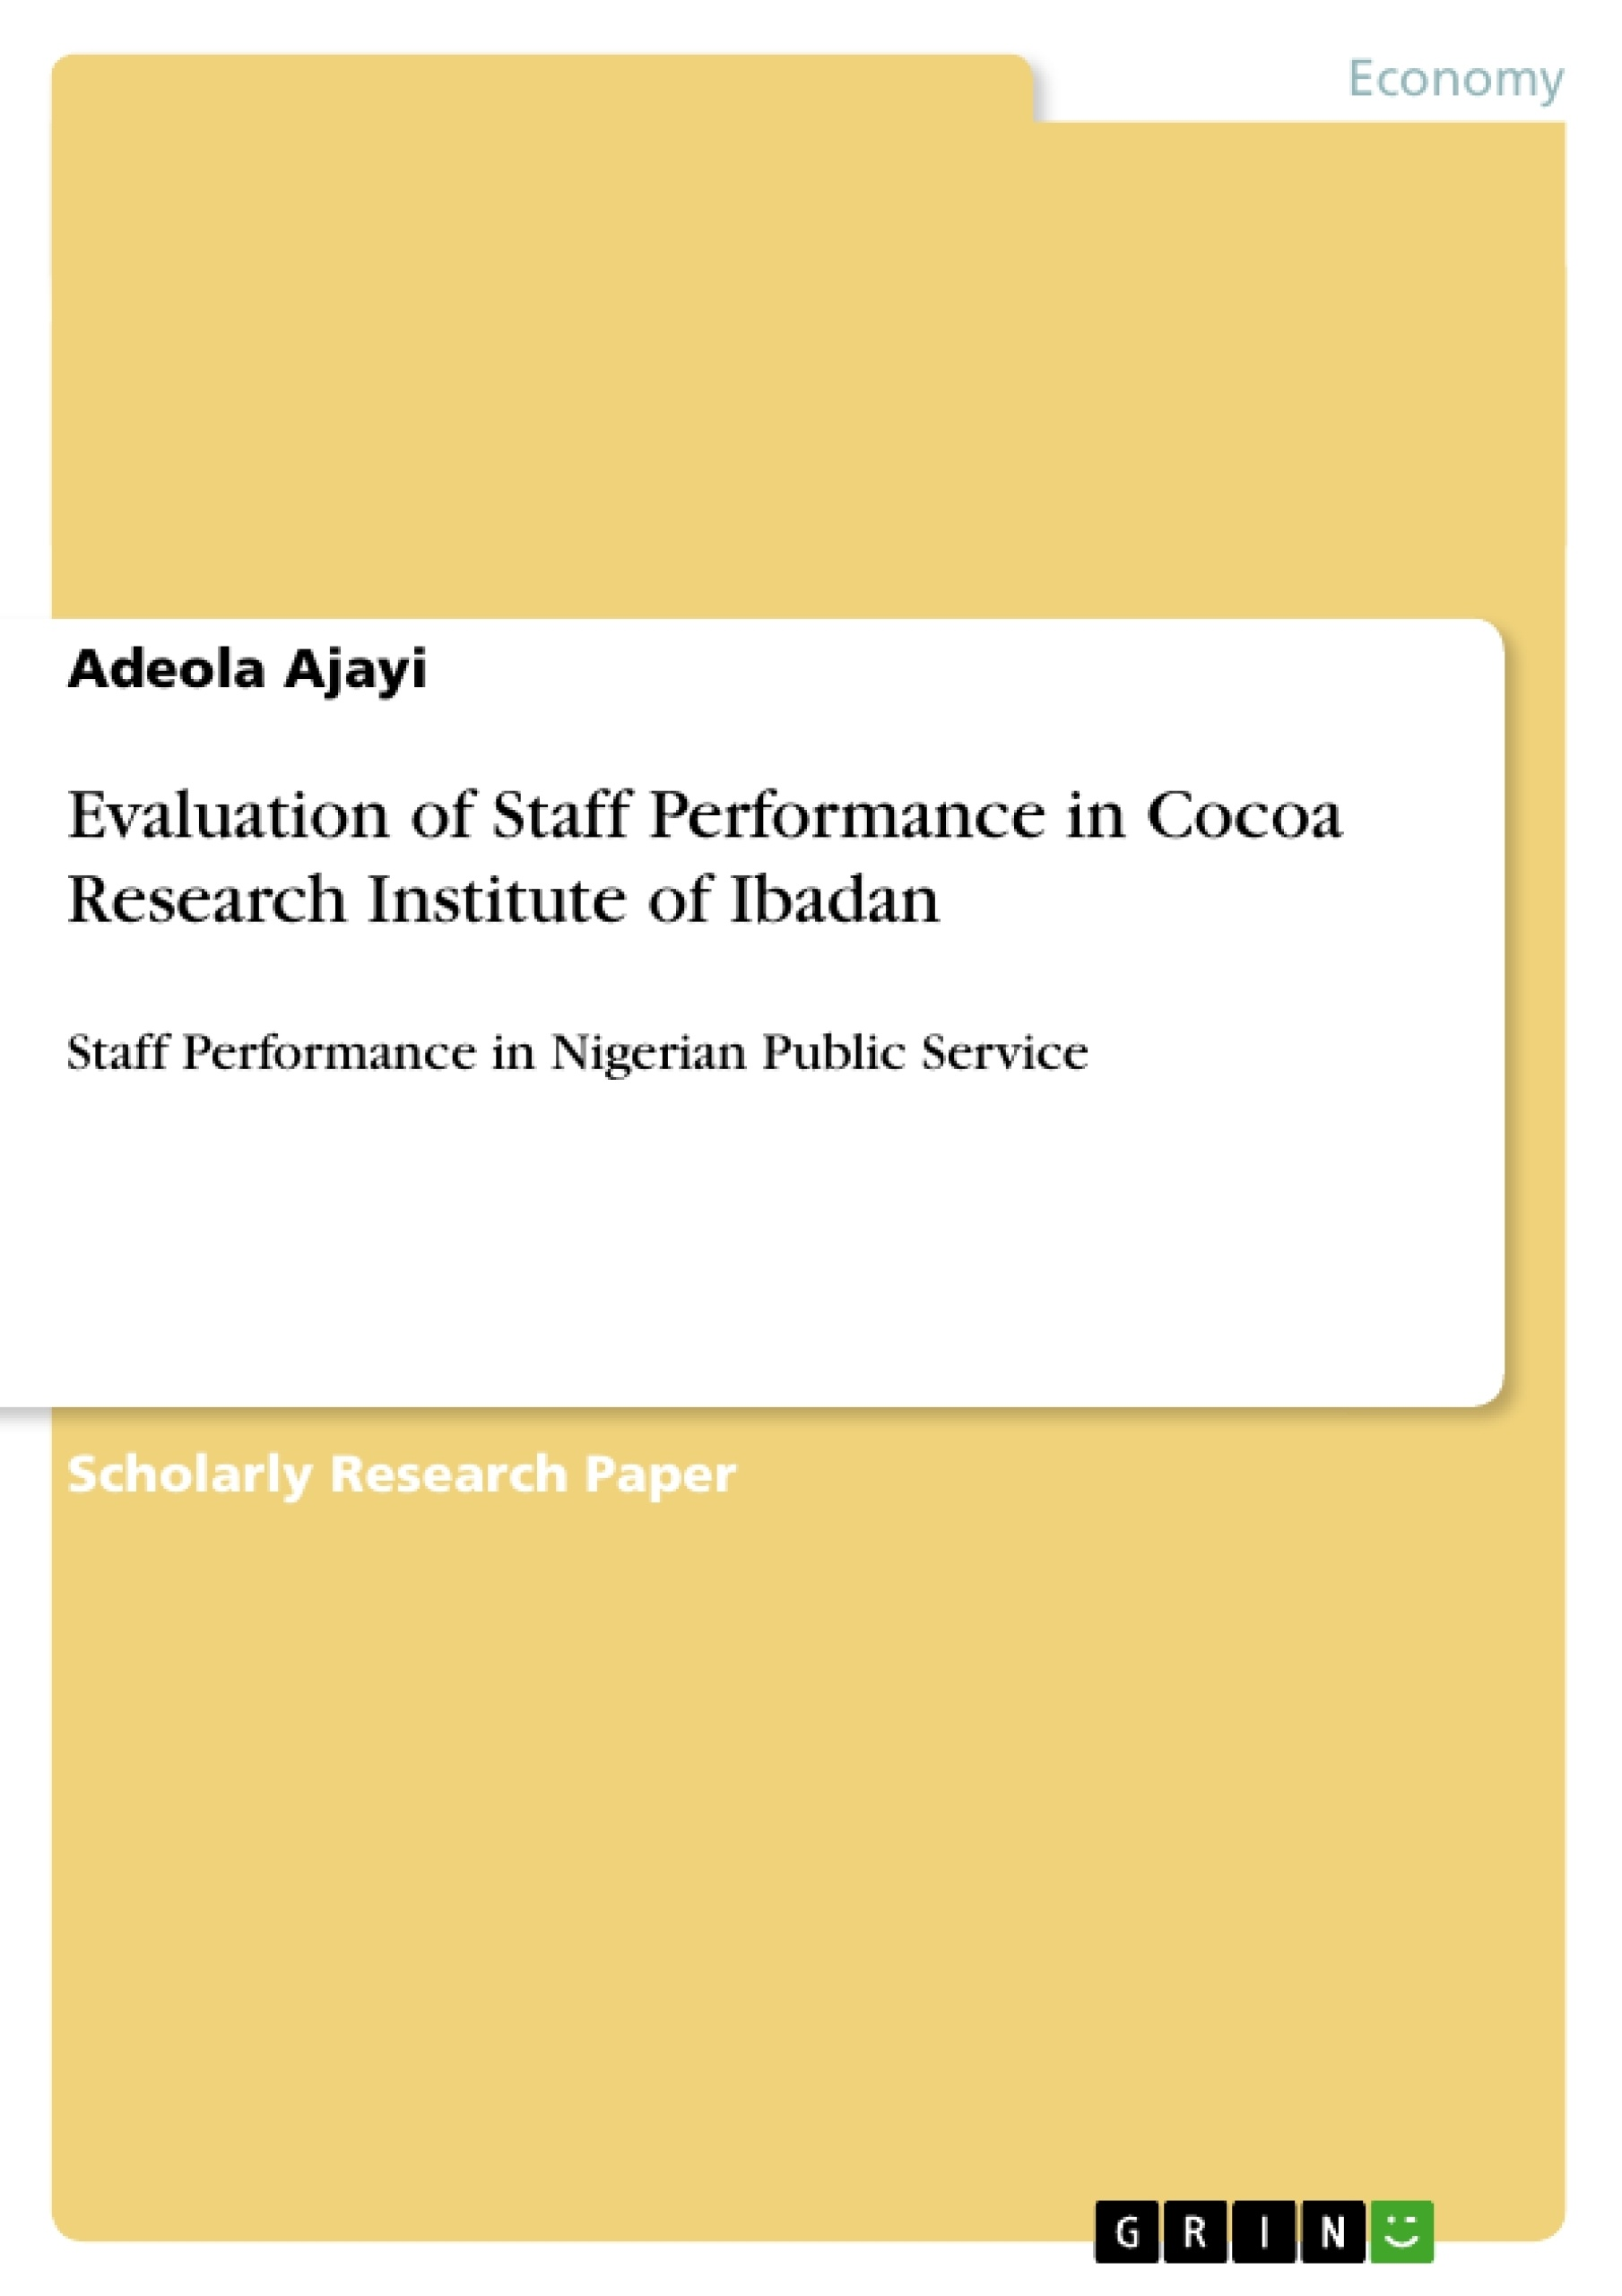 Title: Evaluation of Staff Performance in Cocoa Research Institute of Ibadan